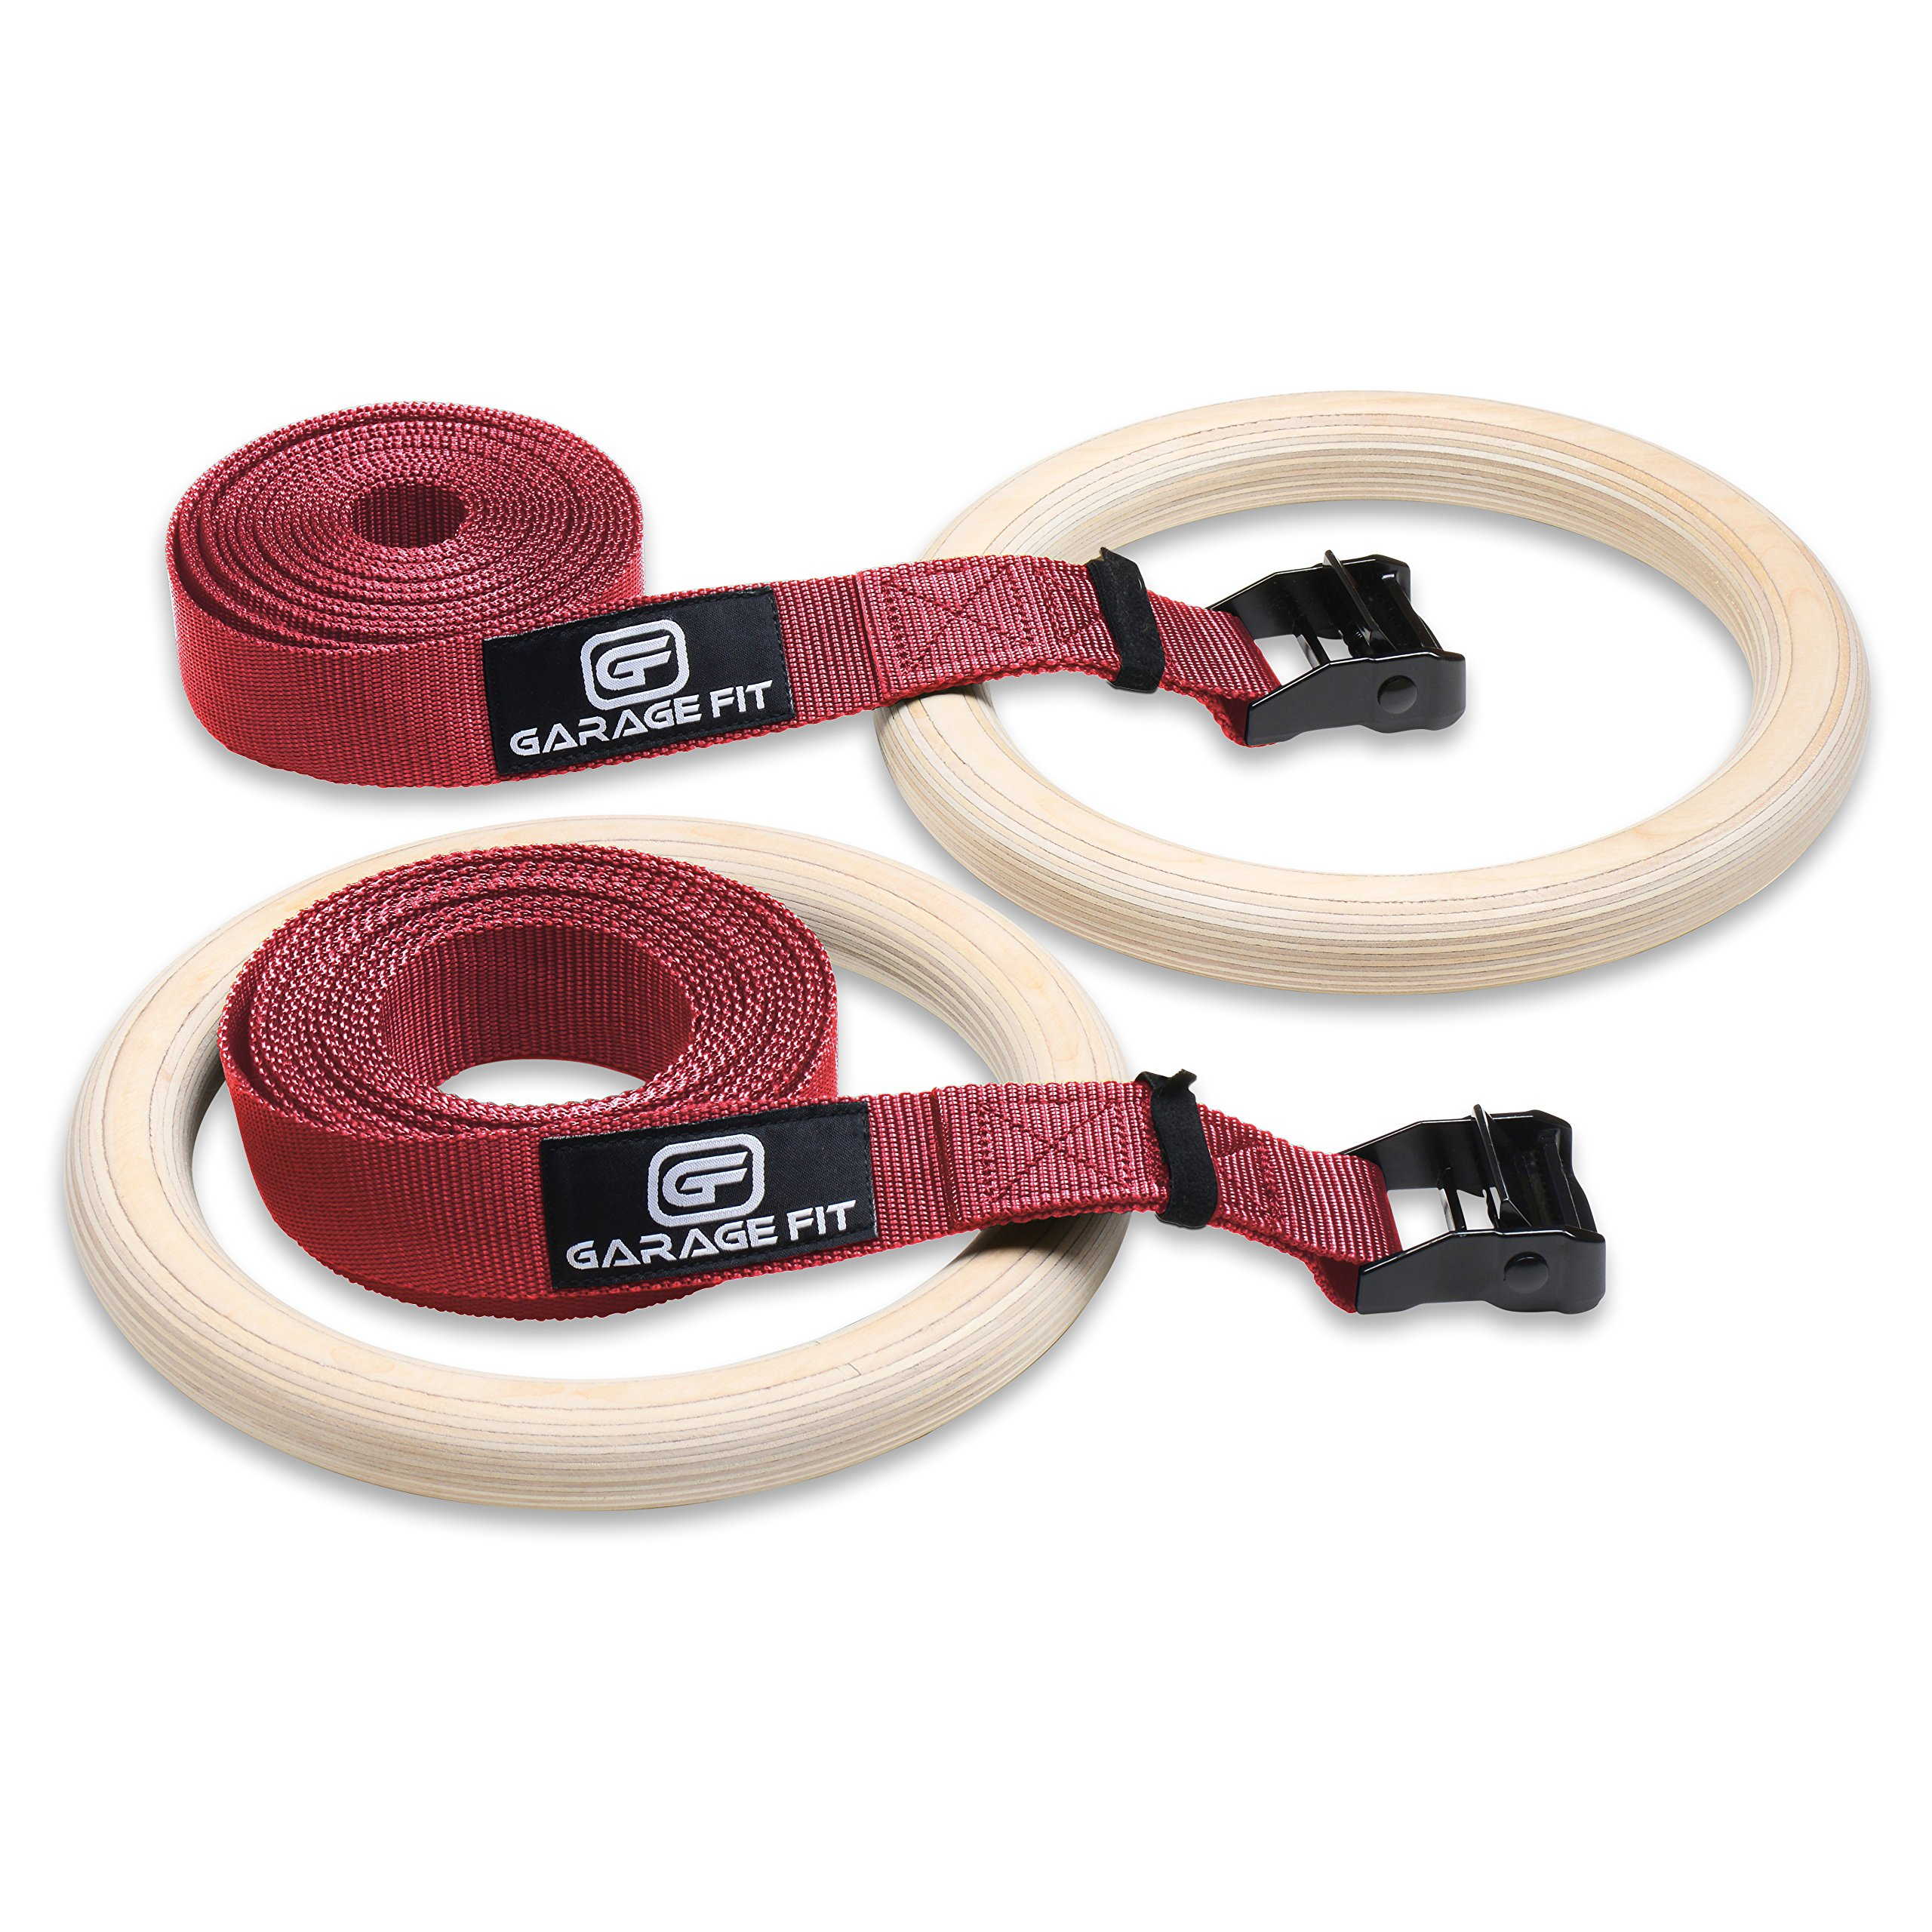 duty professional are itm these for rings buckle that anyone straps titan w a exercise olympic investment looking thick by having comparison without gymnastic make gym premium perfect heavy to is quality wood